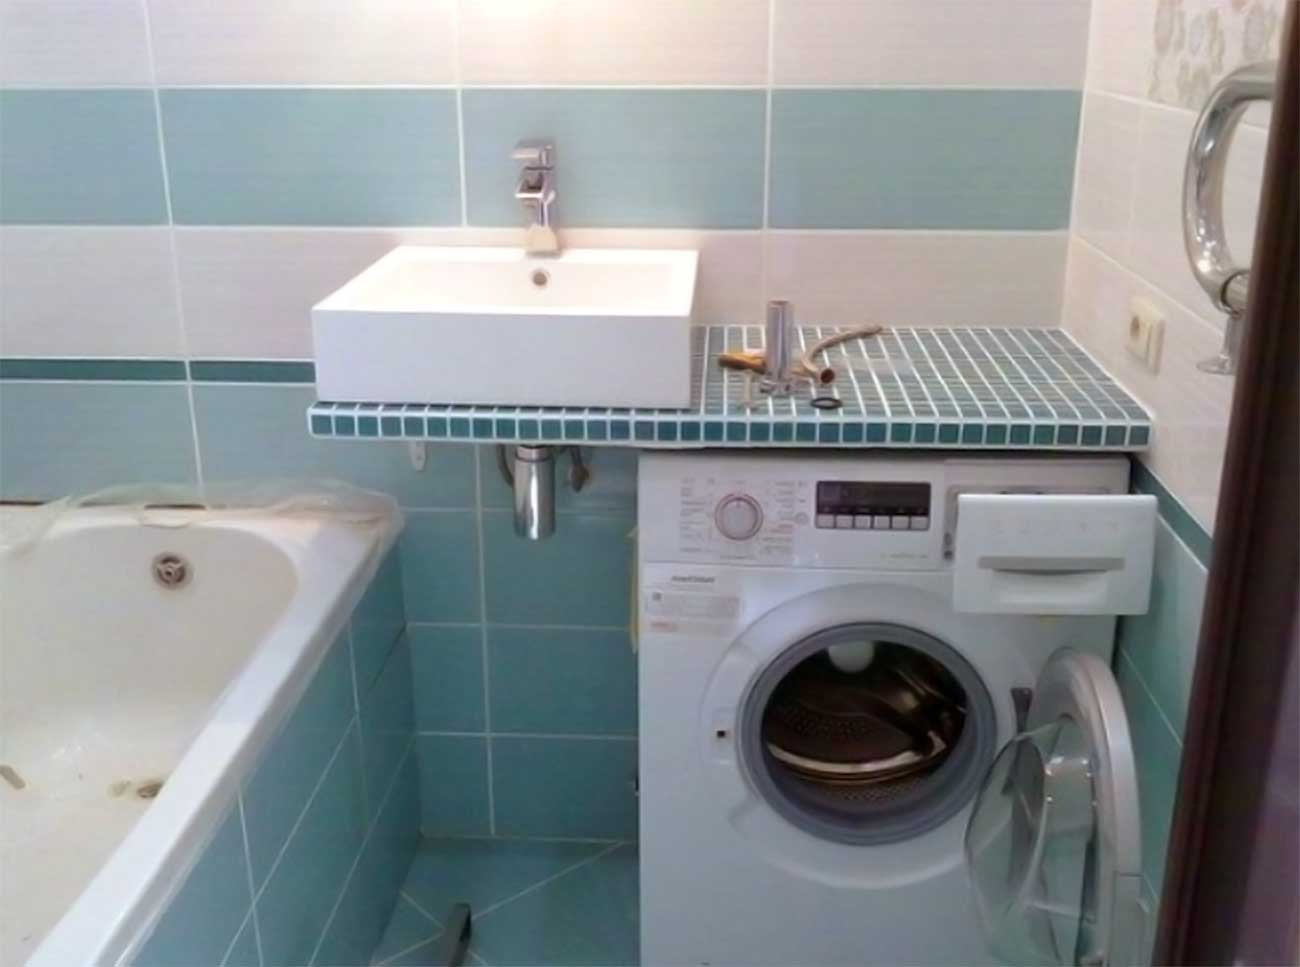 How To Put Washing Machine In A Small Bathroom The Right Way